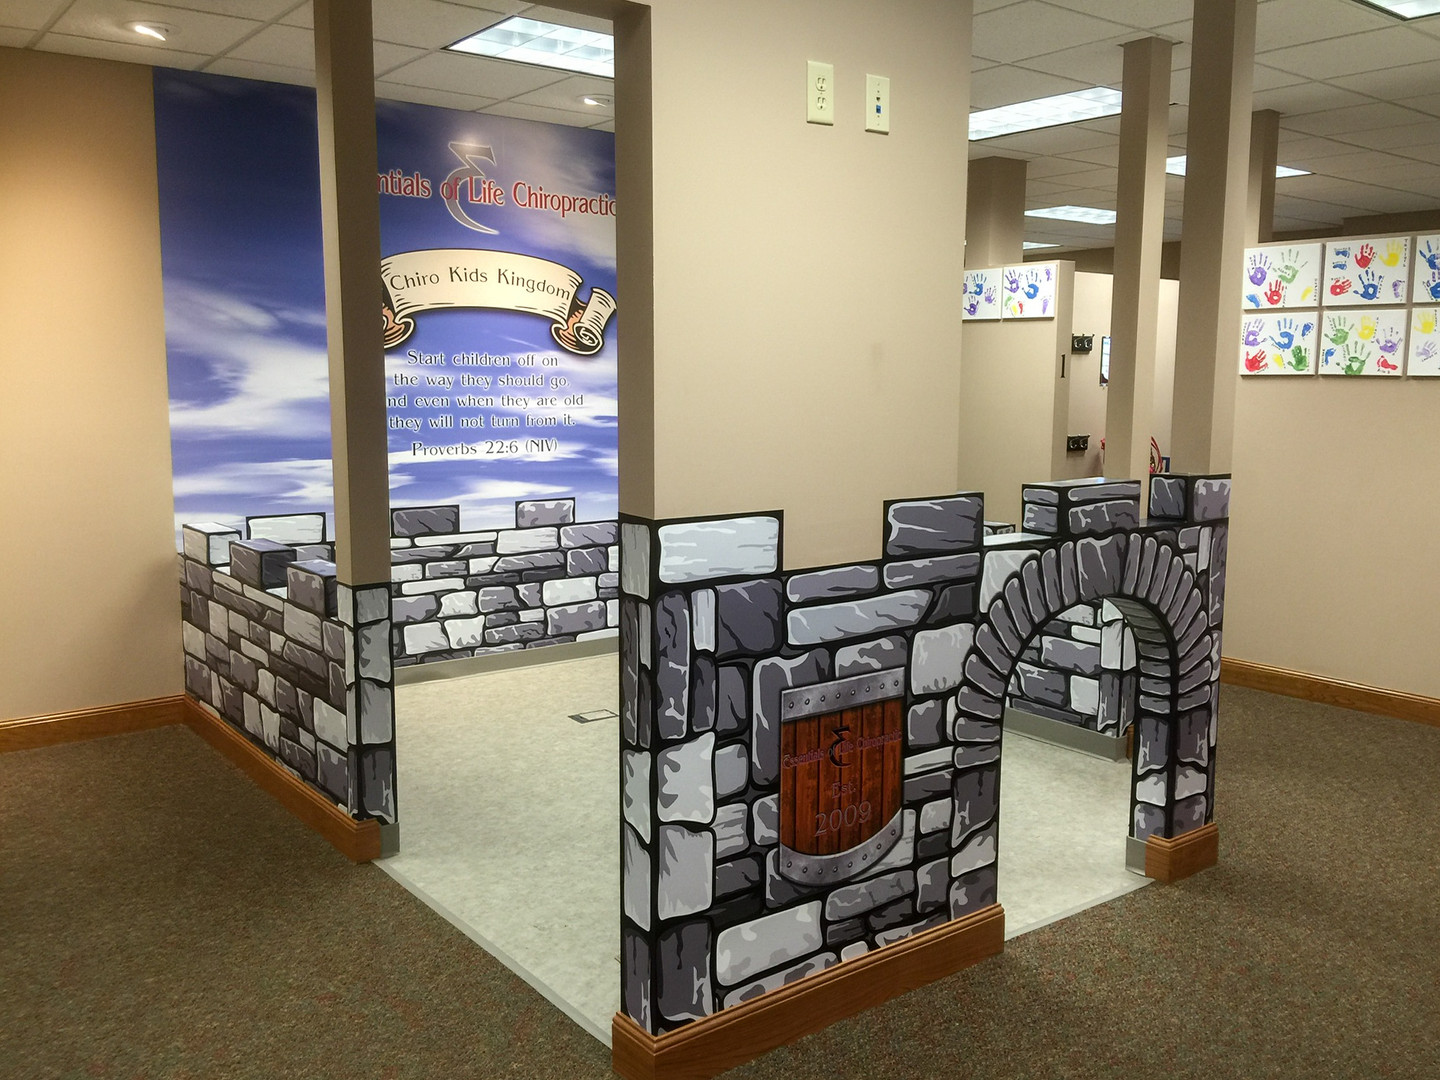 Wall Graphics at Essentials of Life Chiropractic